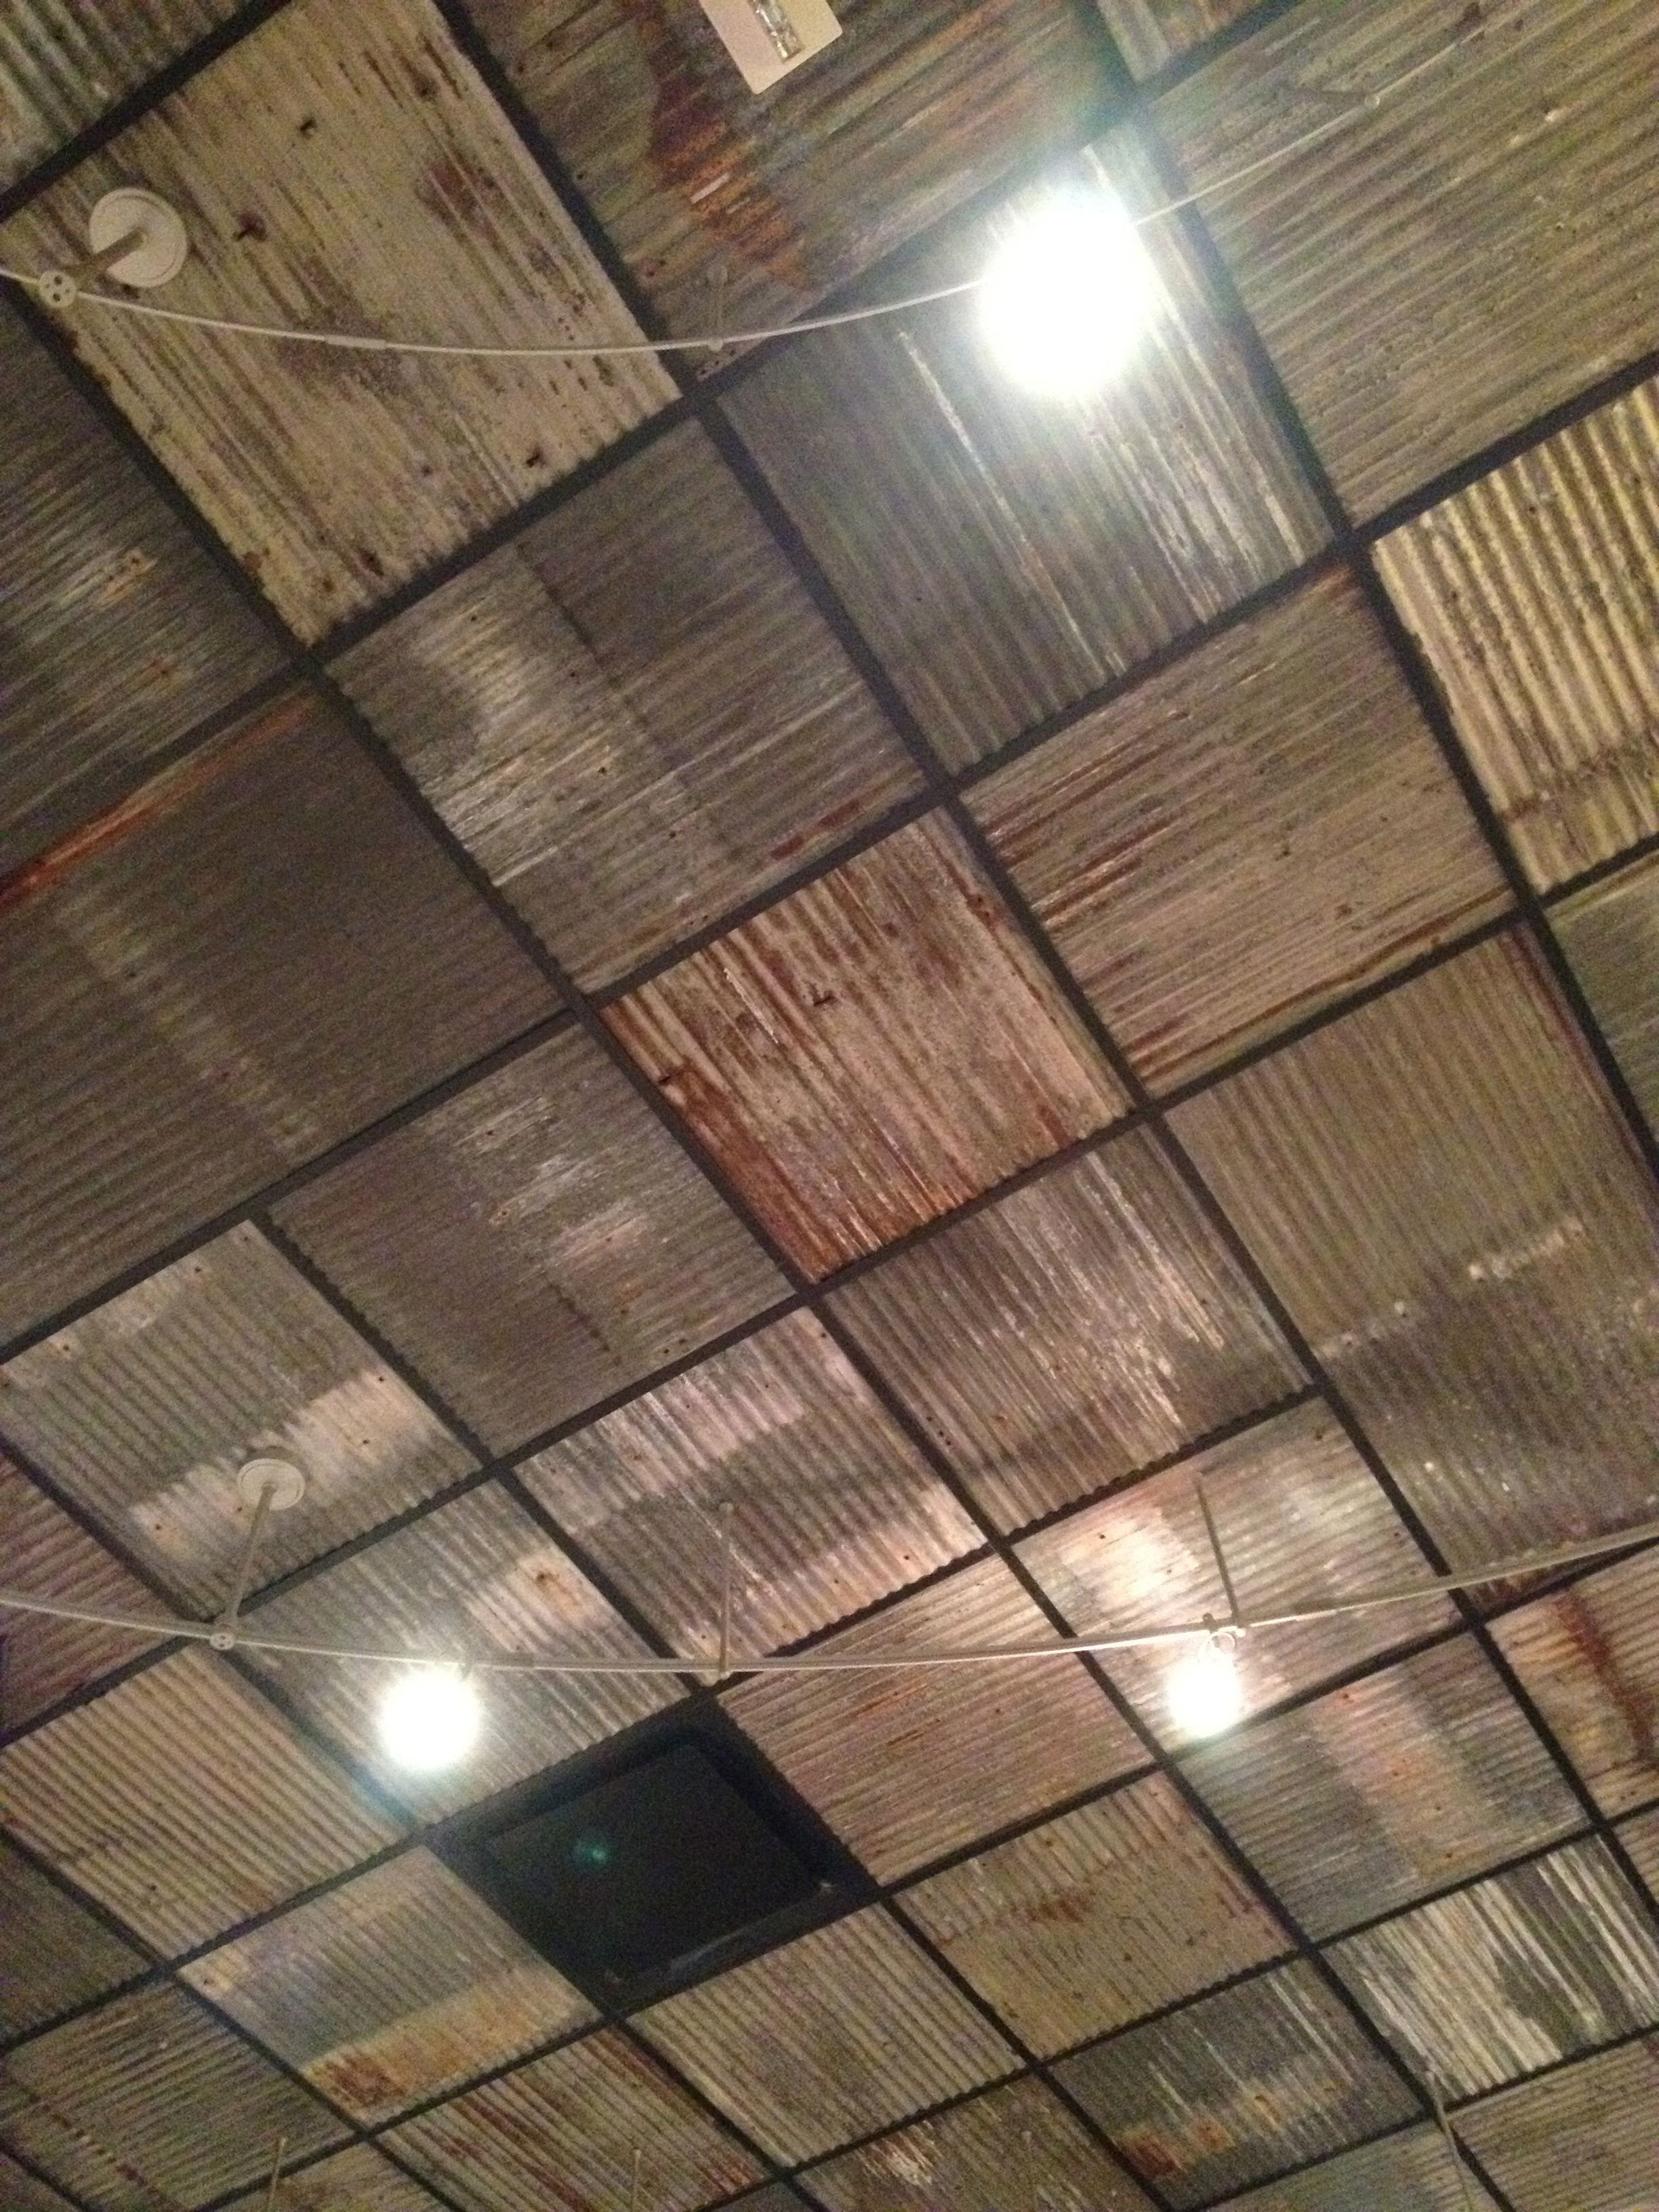 Replace Boring Ceiling Tiles With Rusty Corrugated Metal Nice From Grimaldi S In Dallas